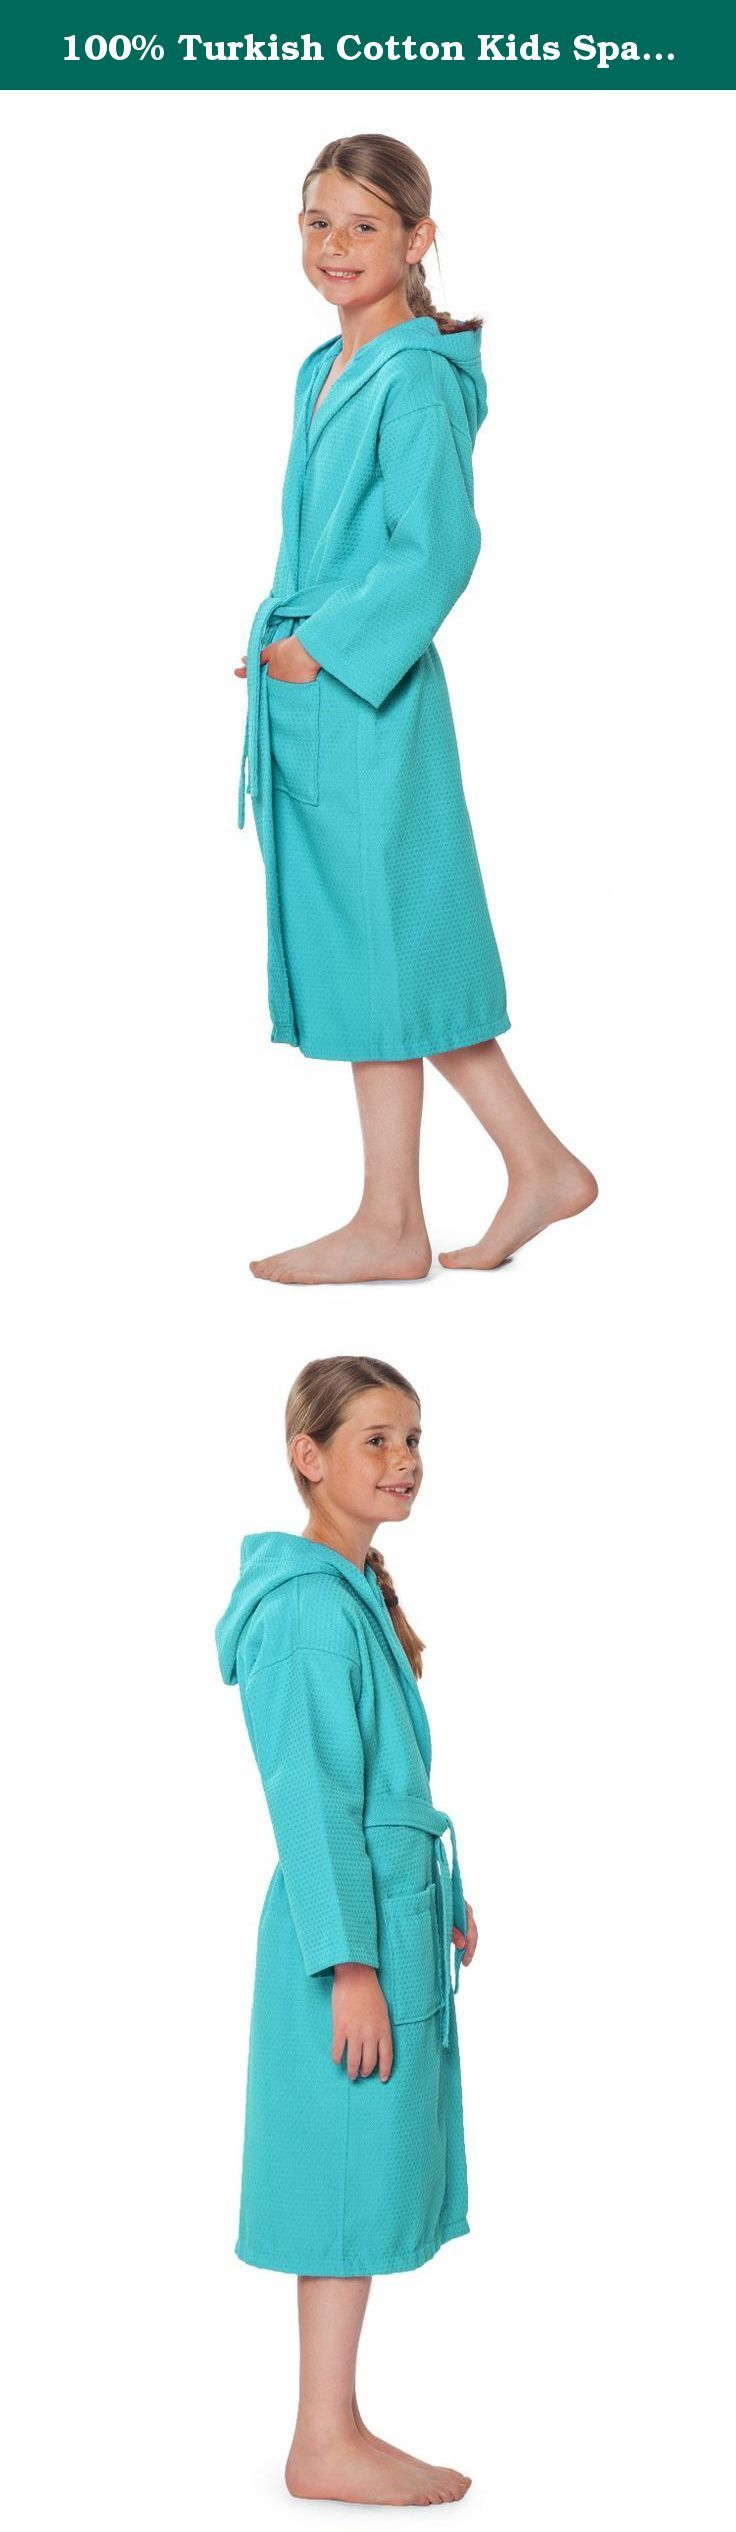 """100% Turkish Cotton Kids Spa Party, Flower Girl Hooded Waffle Robe (Large, Turquoise ). Model is 4'8"""", 70lbs and wears L. This 100% Turkish cotton hooded spa robe is designed to provide the utmost in cozy comfort and style for the kids. The light and soft waffle spa robe adds a light layer over nightwear. The robes make for a quality gift for your spa party or for your young bridesmaids! Specifications: This robe features a waffle weave, tailored collar, self-tie wrap belt and two patch..."""